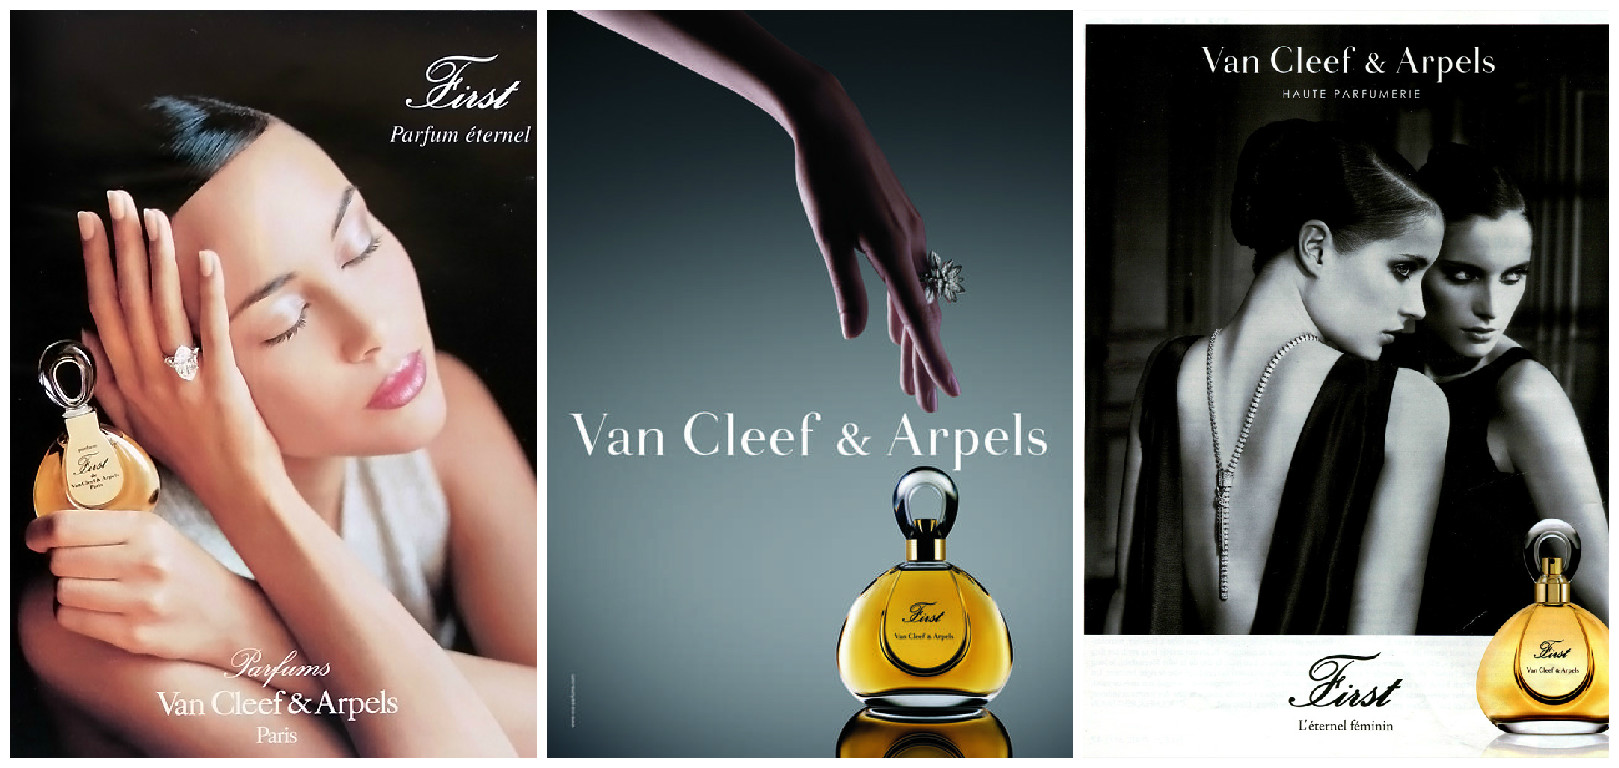 Perfume of the Day: First by Van Cleef & Arpels